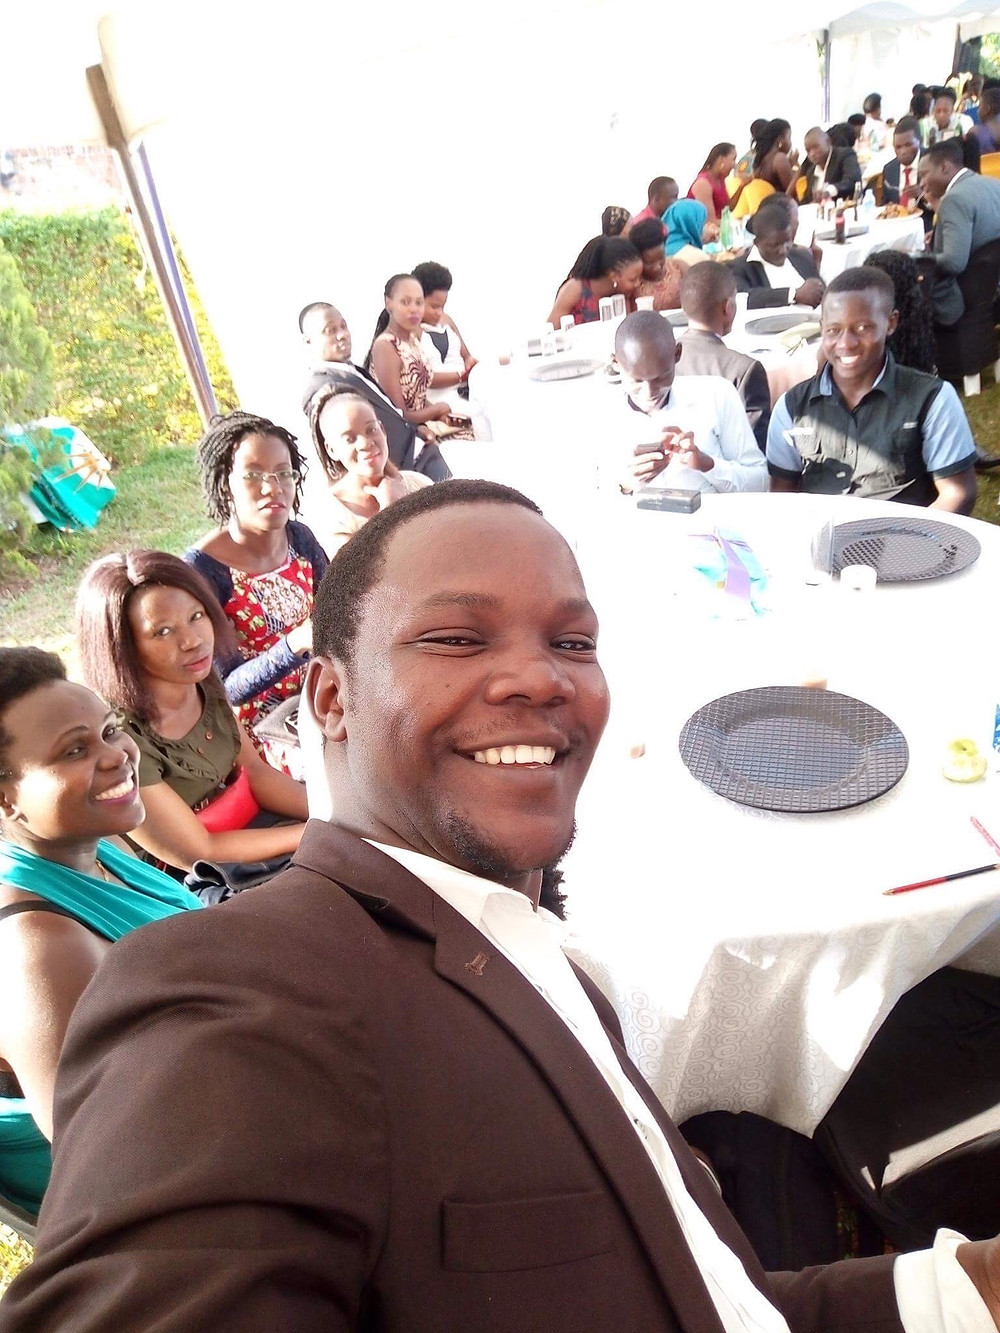 Me and some of the Mbuyu team at a friends wedding